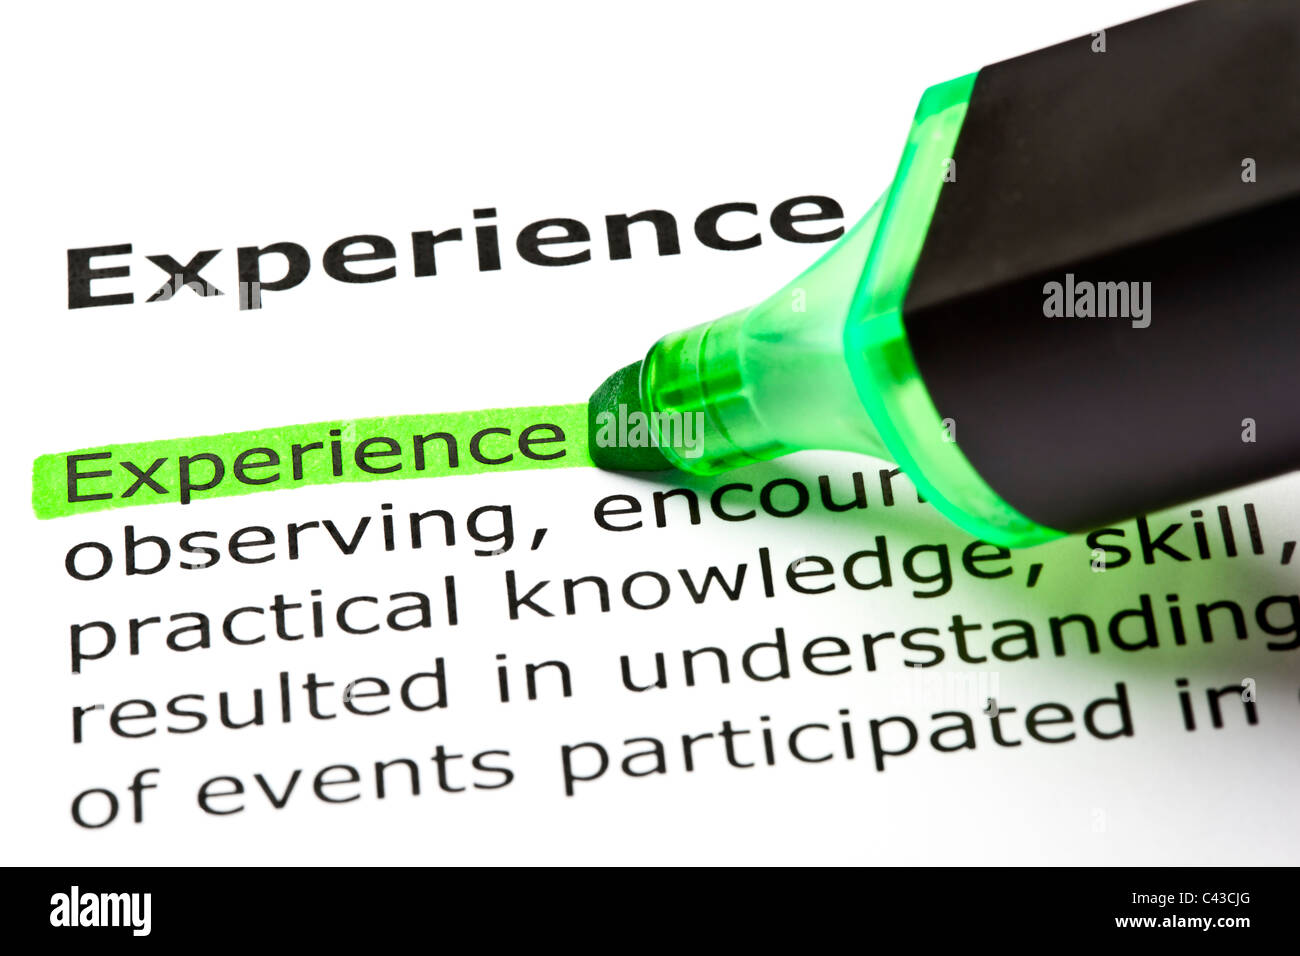 The word 'Experience' highlighted in green with felt tip pen - Stock Image